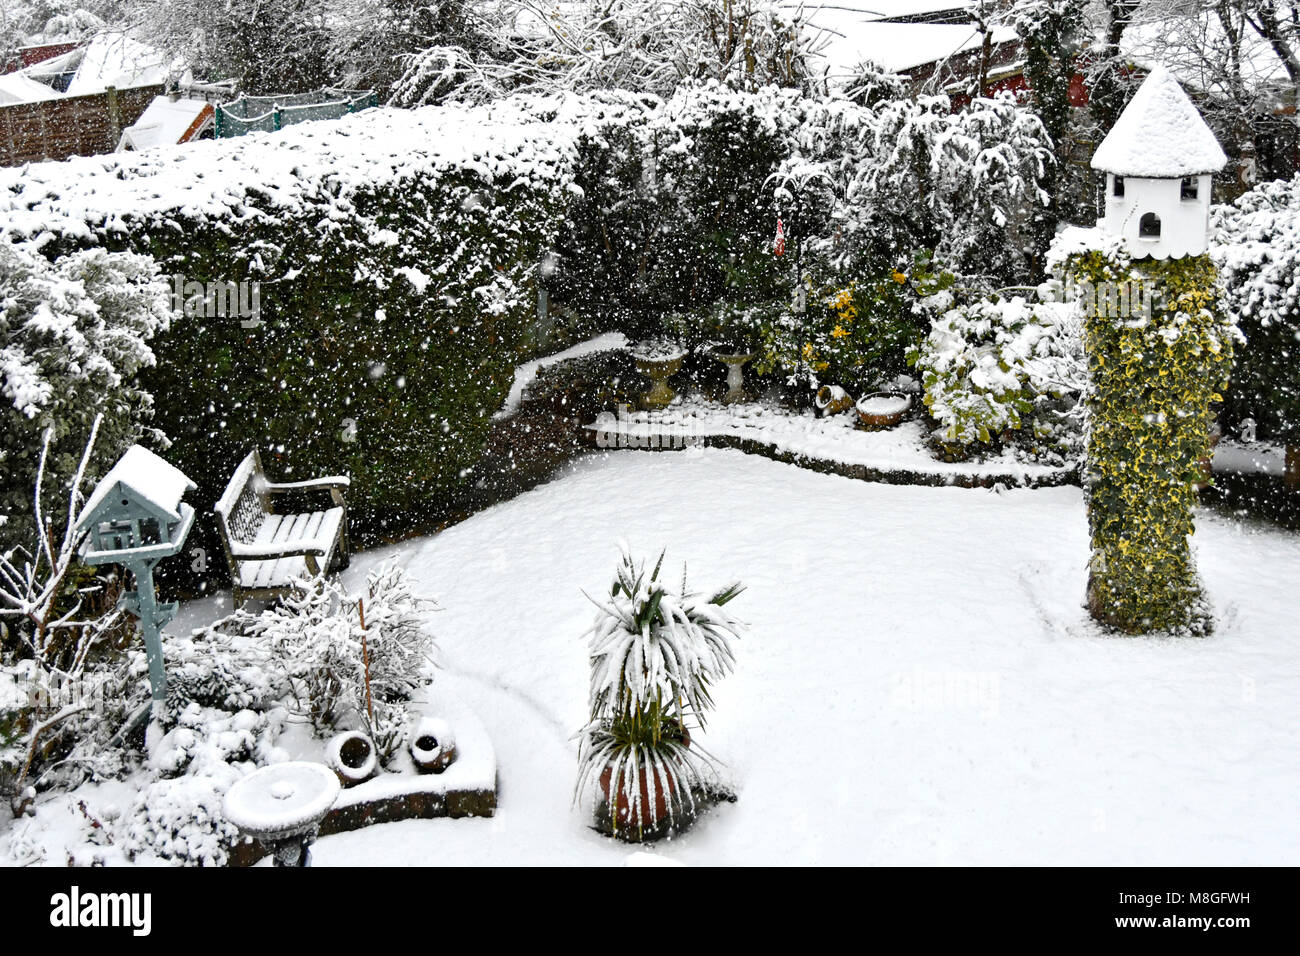 View from above  looking down on back garden grass lawn conifer hedge & flower beds falling winter snow ivy - Stock Image